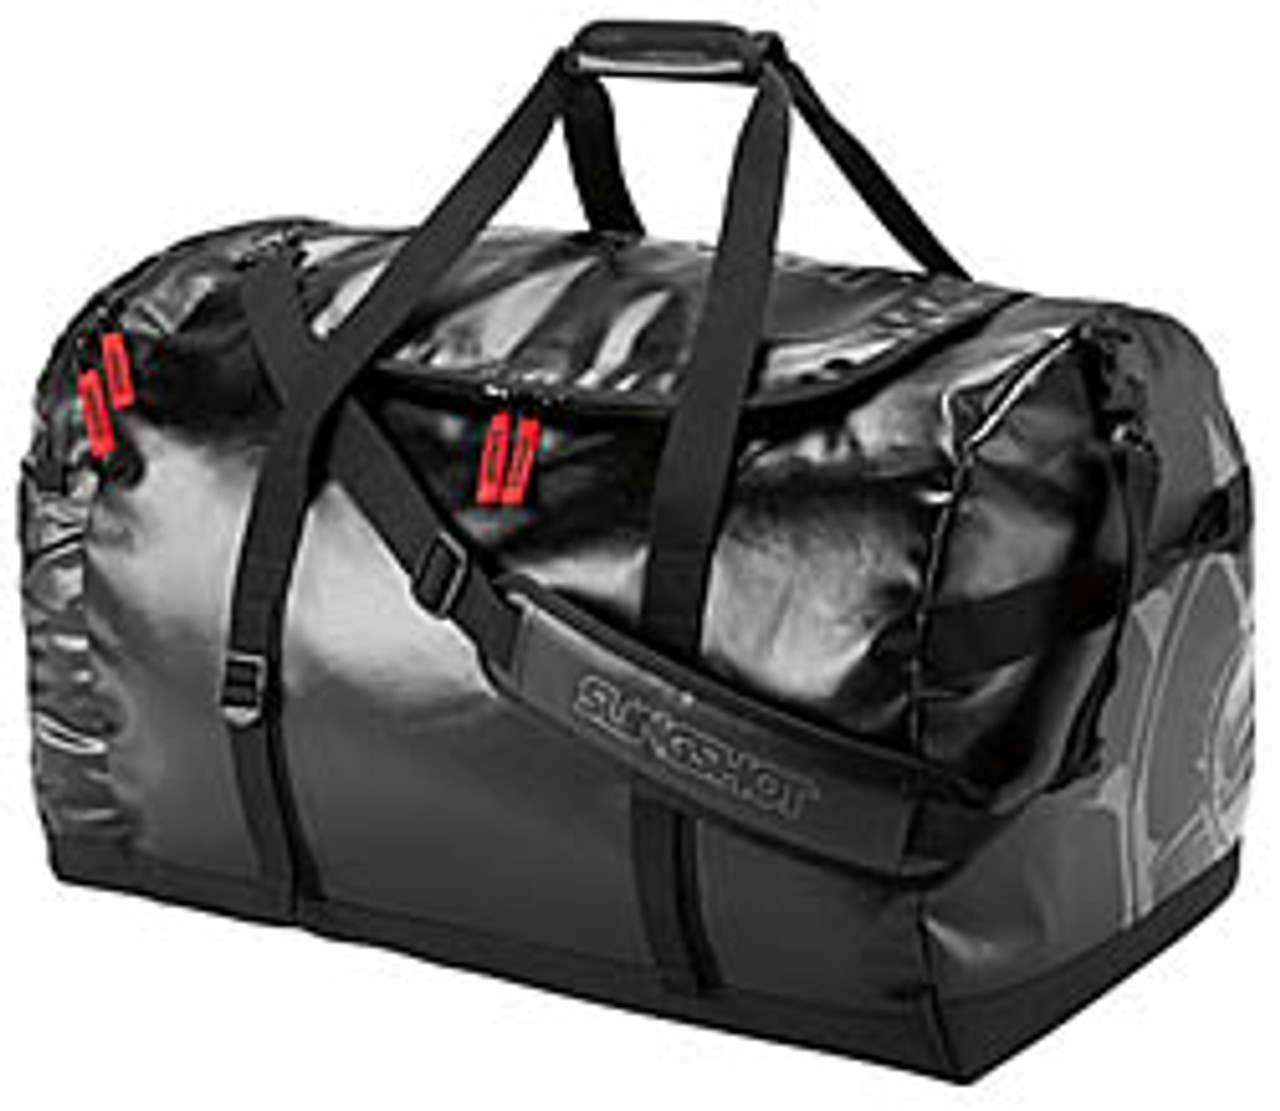 Slingshot Waterfall Gear Bag